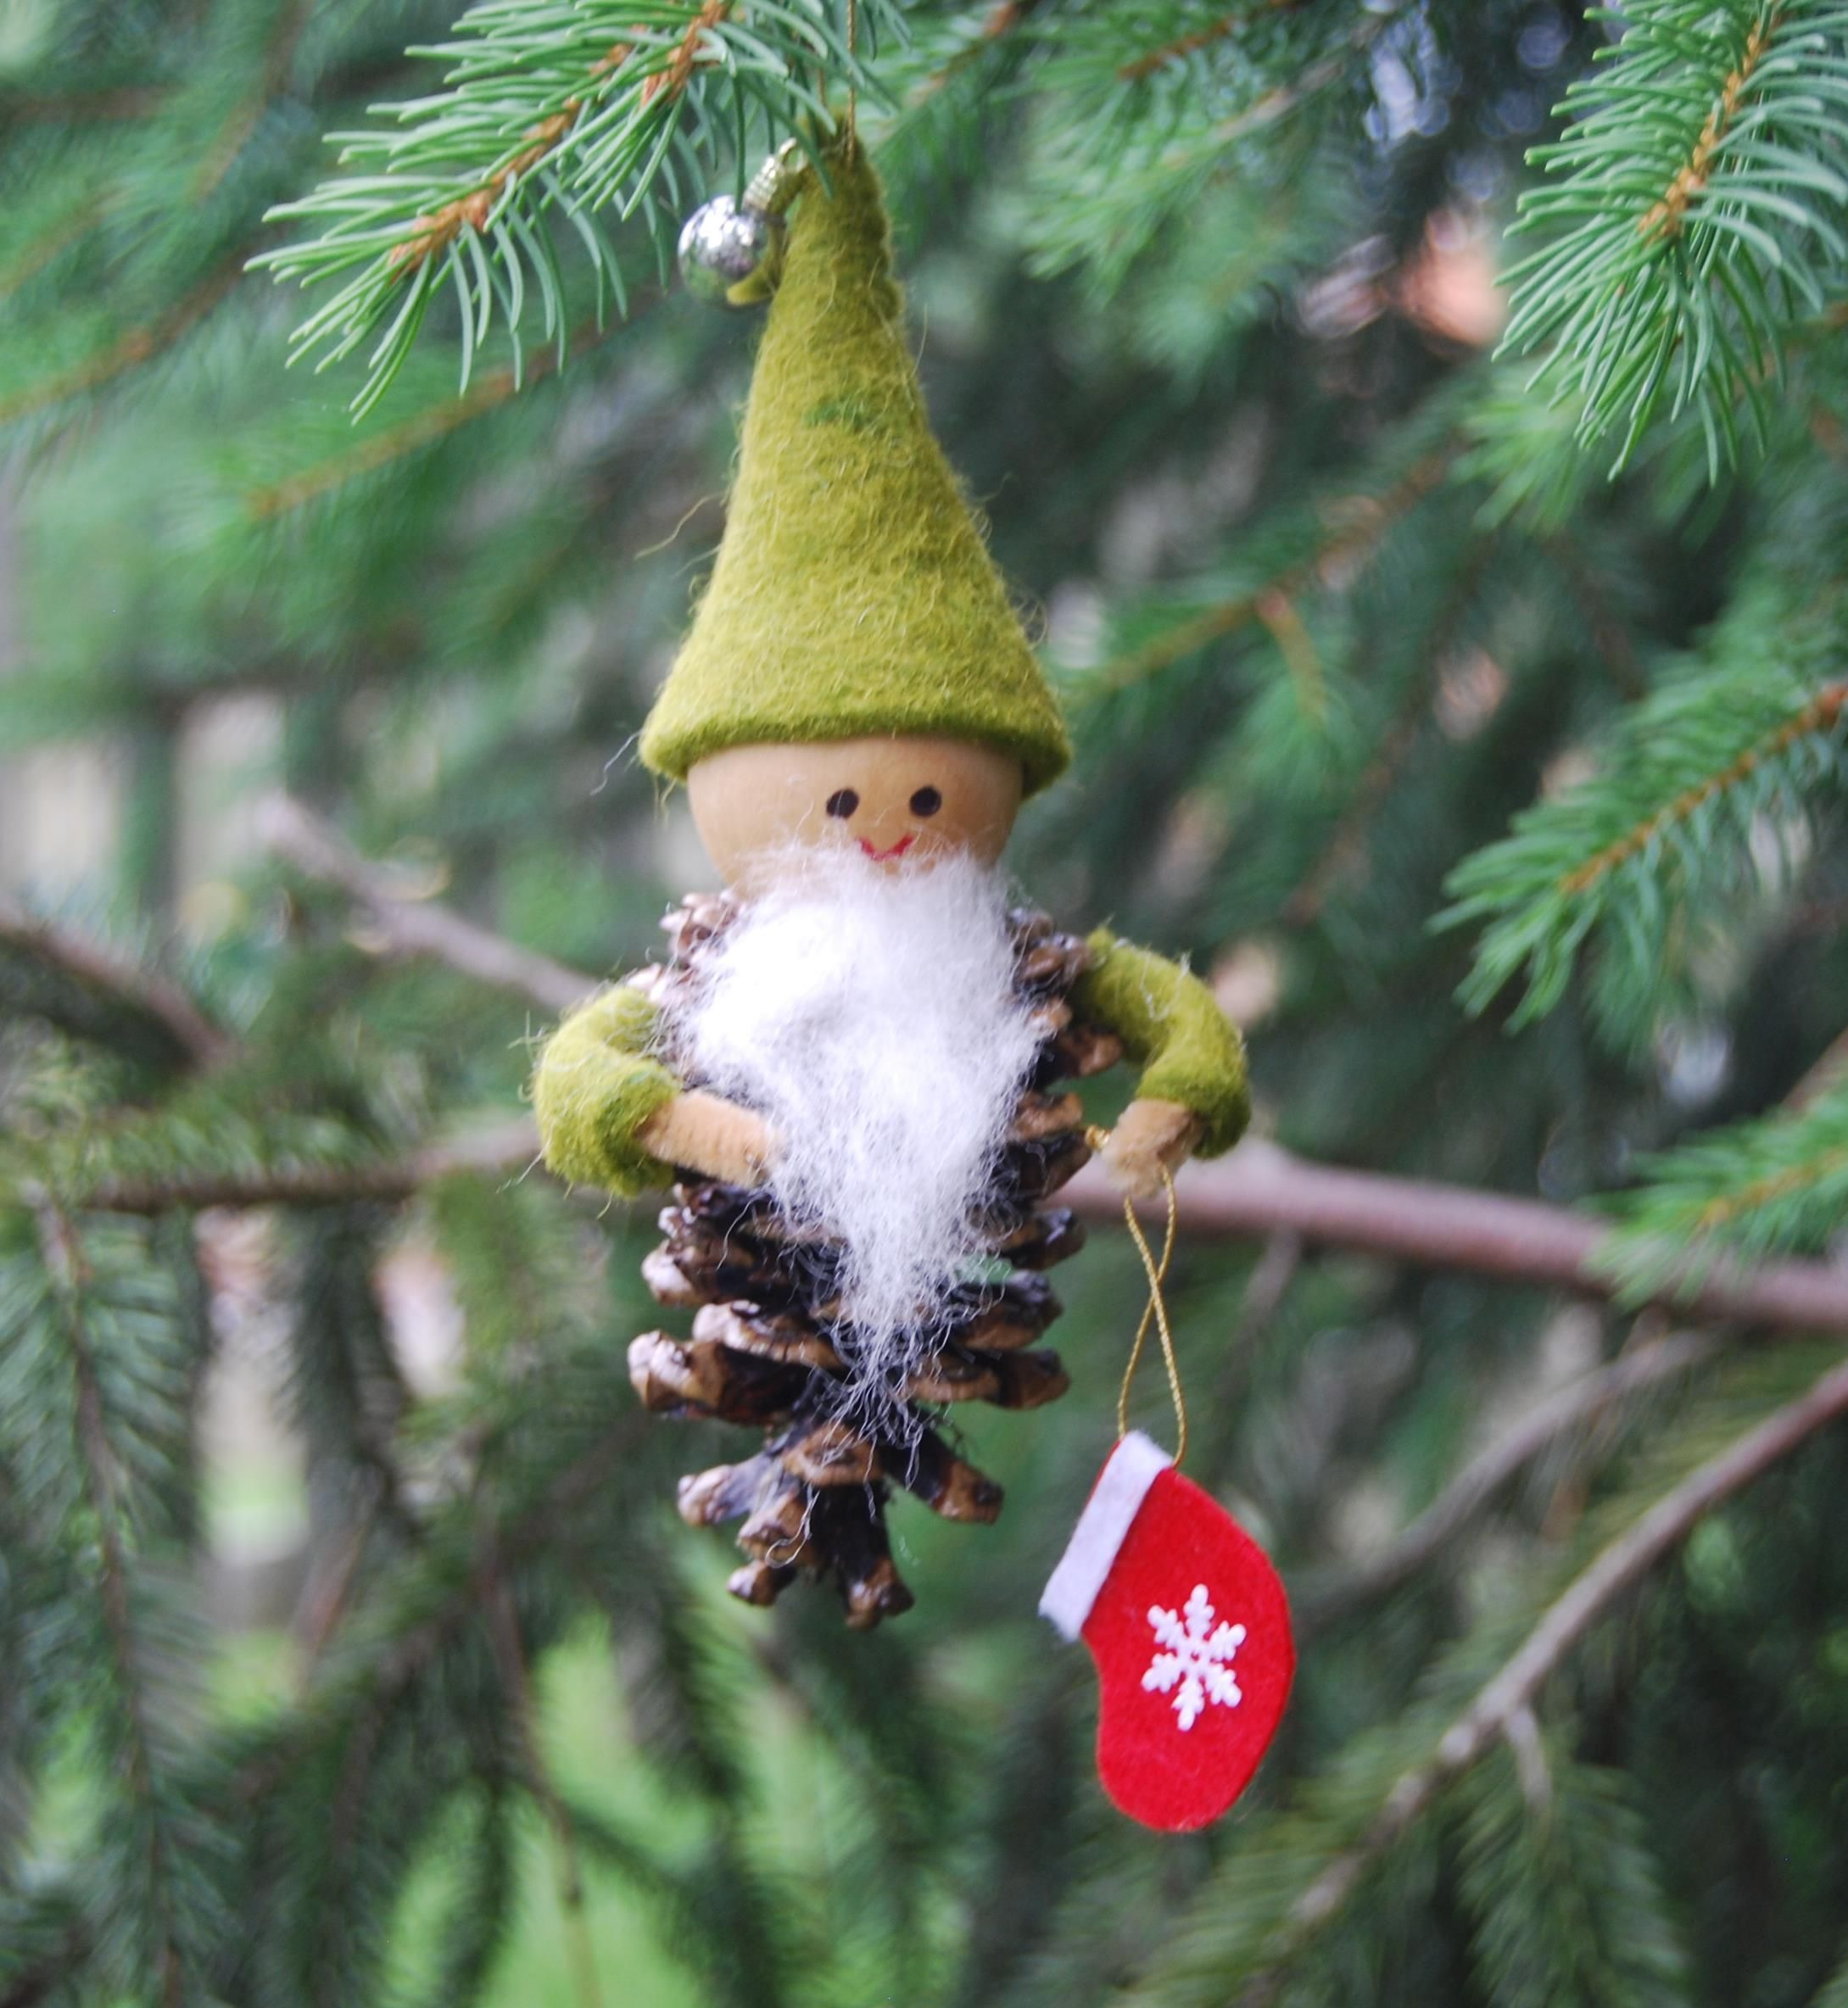 Pinecone Gnome With Christmas Stocking Christmas Decorations Christmas Crafts Christmas Ornaments